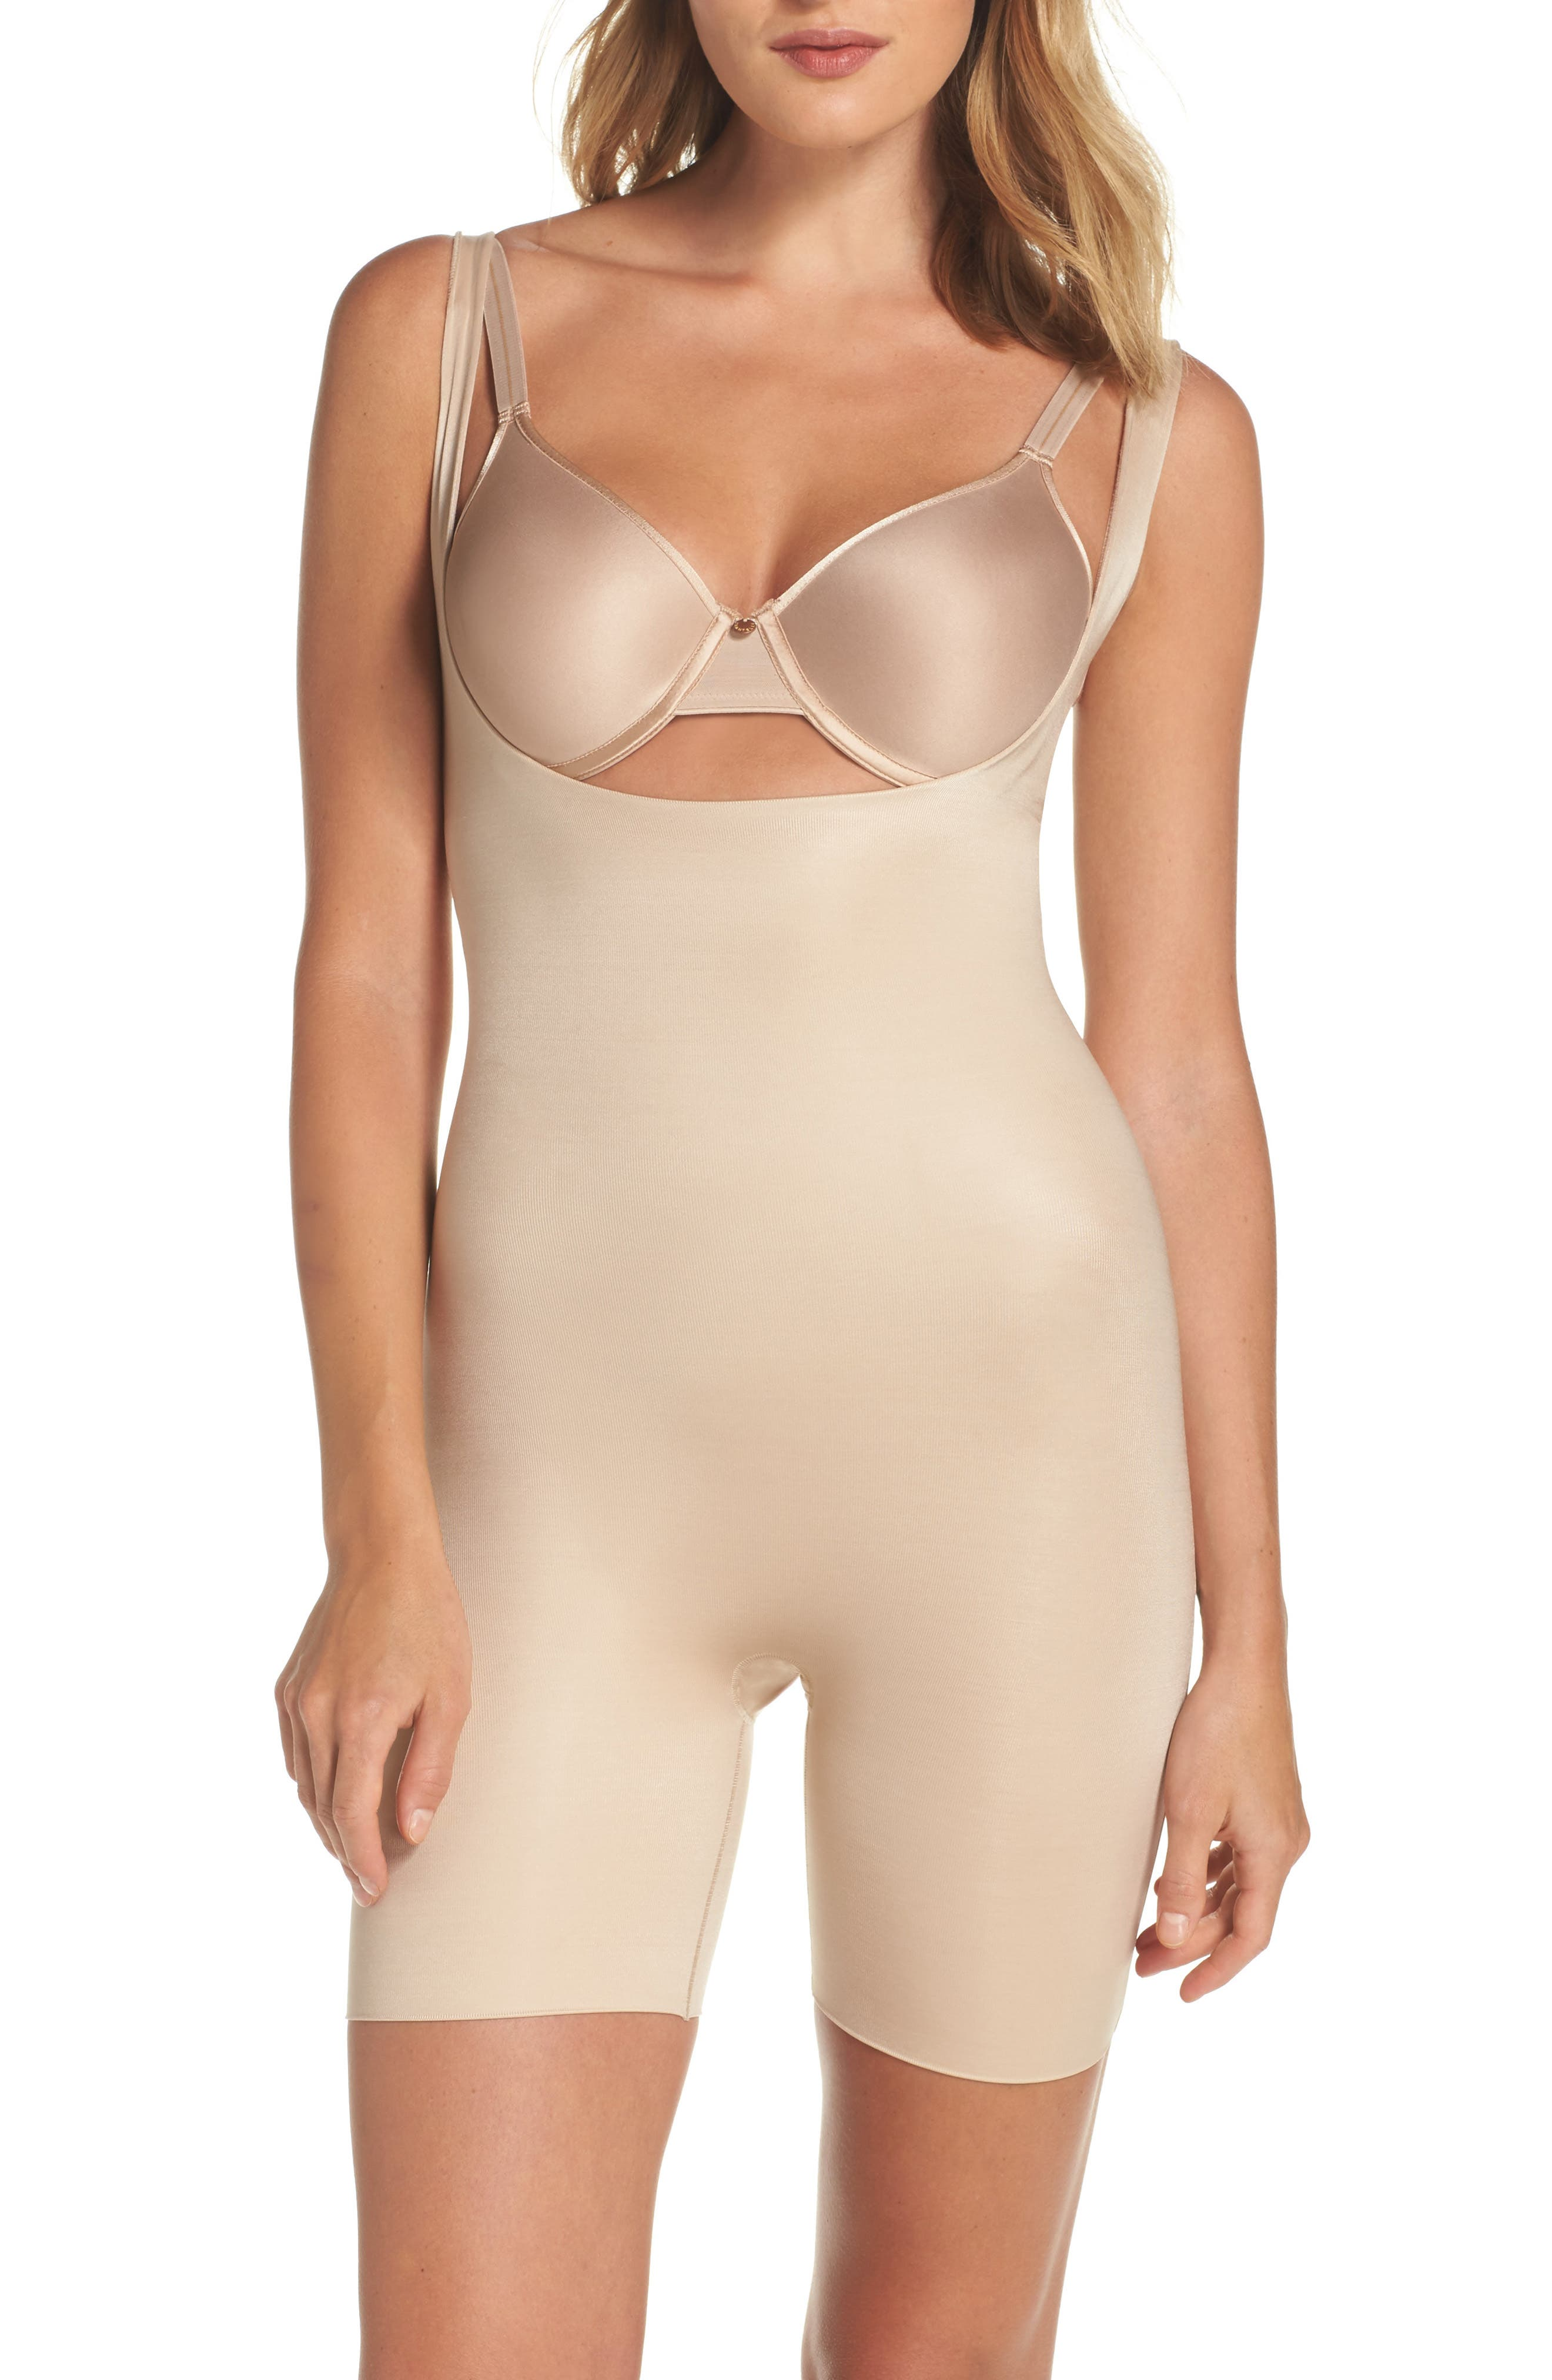 Alternate Image 1 Selected - SPANX® Power Conceal-Her Open Bust Bodysuit